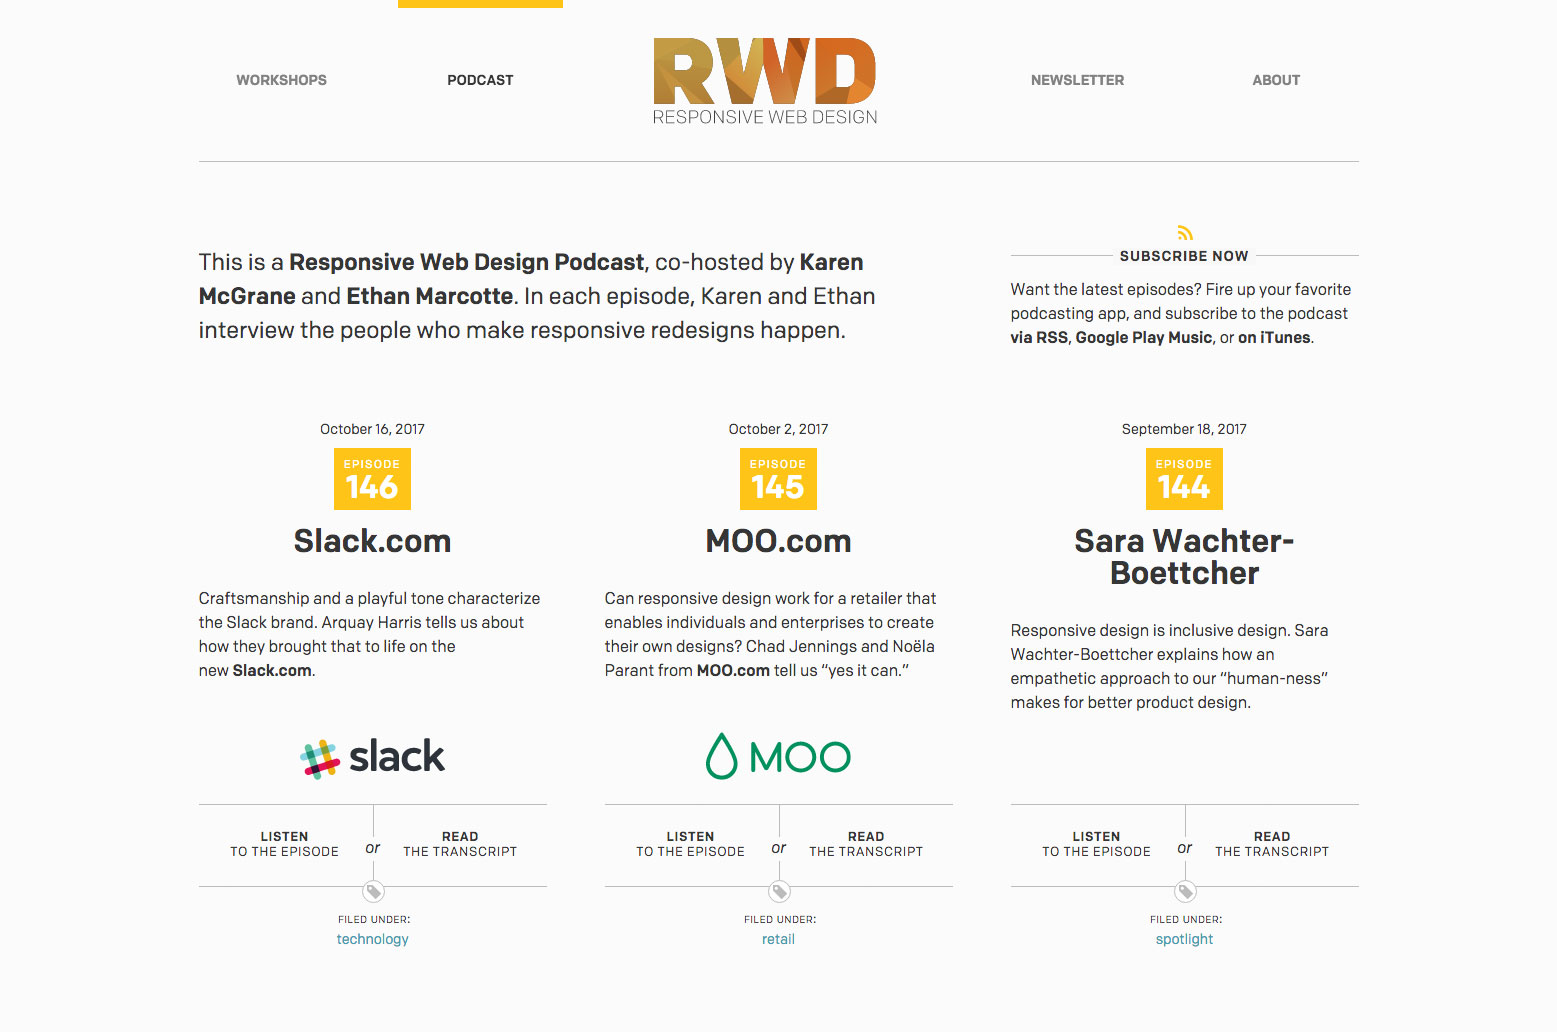 Web design podcasts: RWD